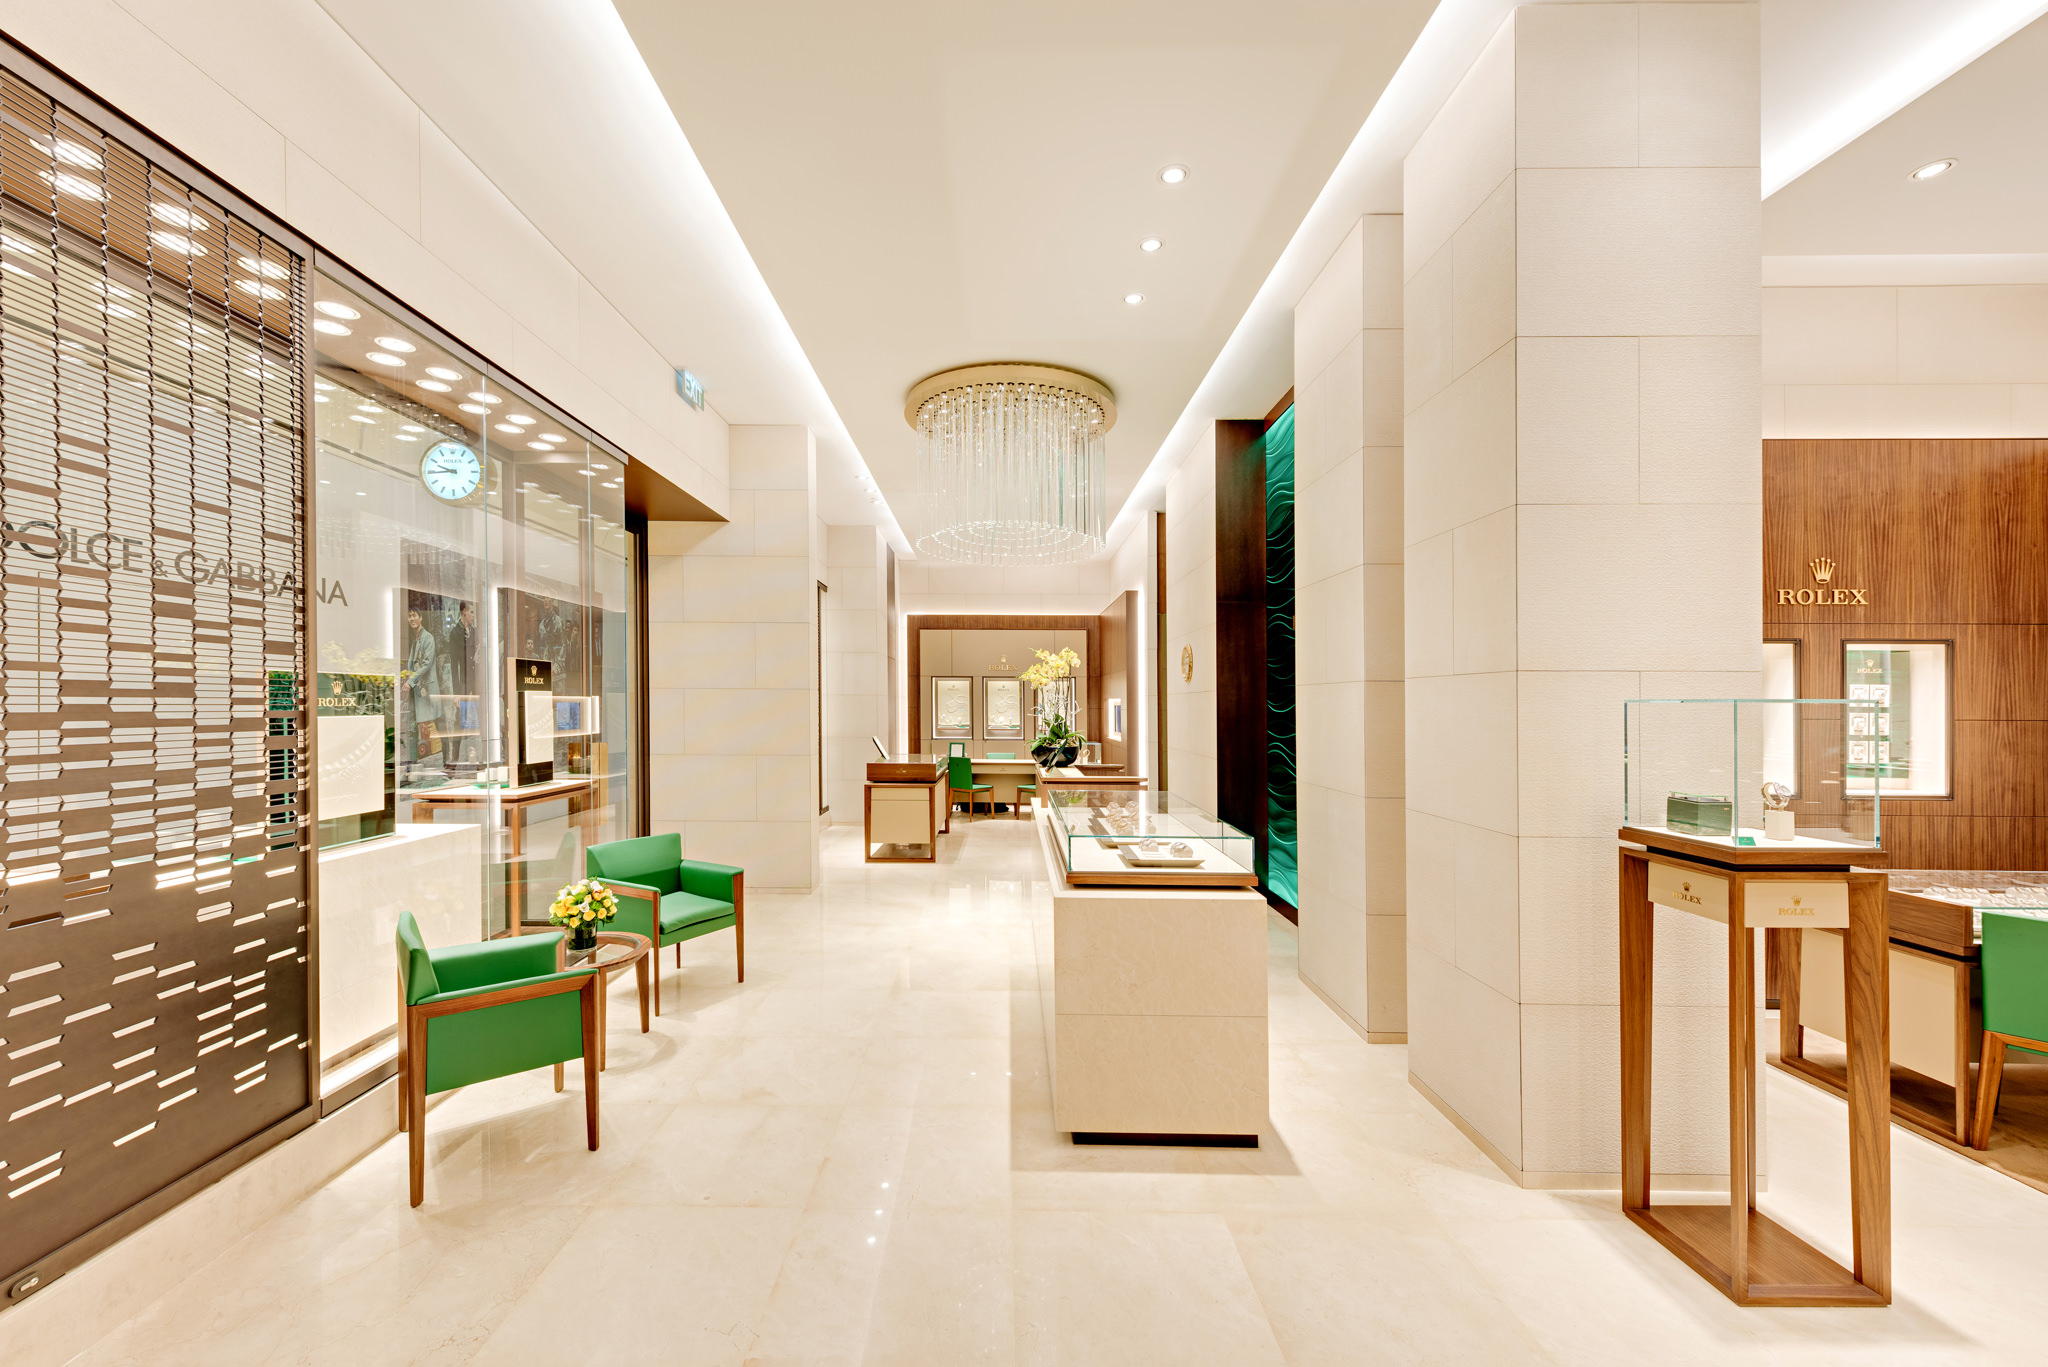 20161224 - Rolex - HCM - Commercial - Interior - Store - Retouch 0010.jpg